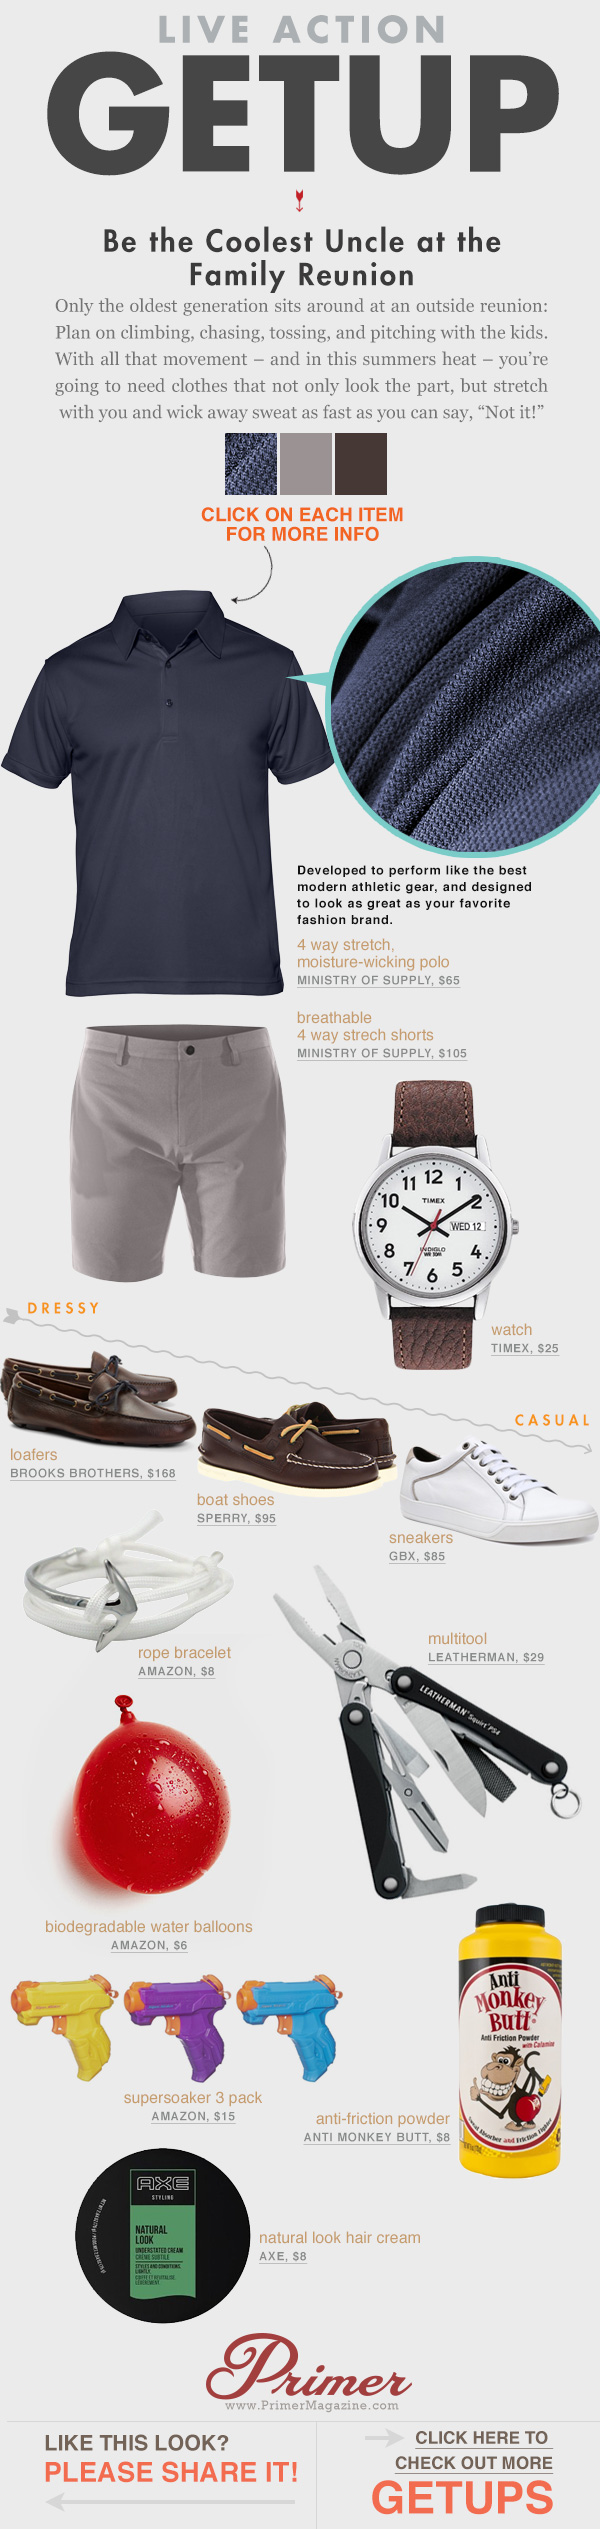 The Getup: Be the Coolest Uncle at the Family Reunion - Including a Triple-crossing H20 War Plan